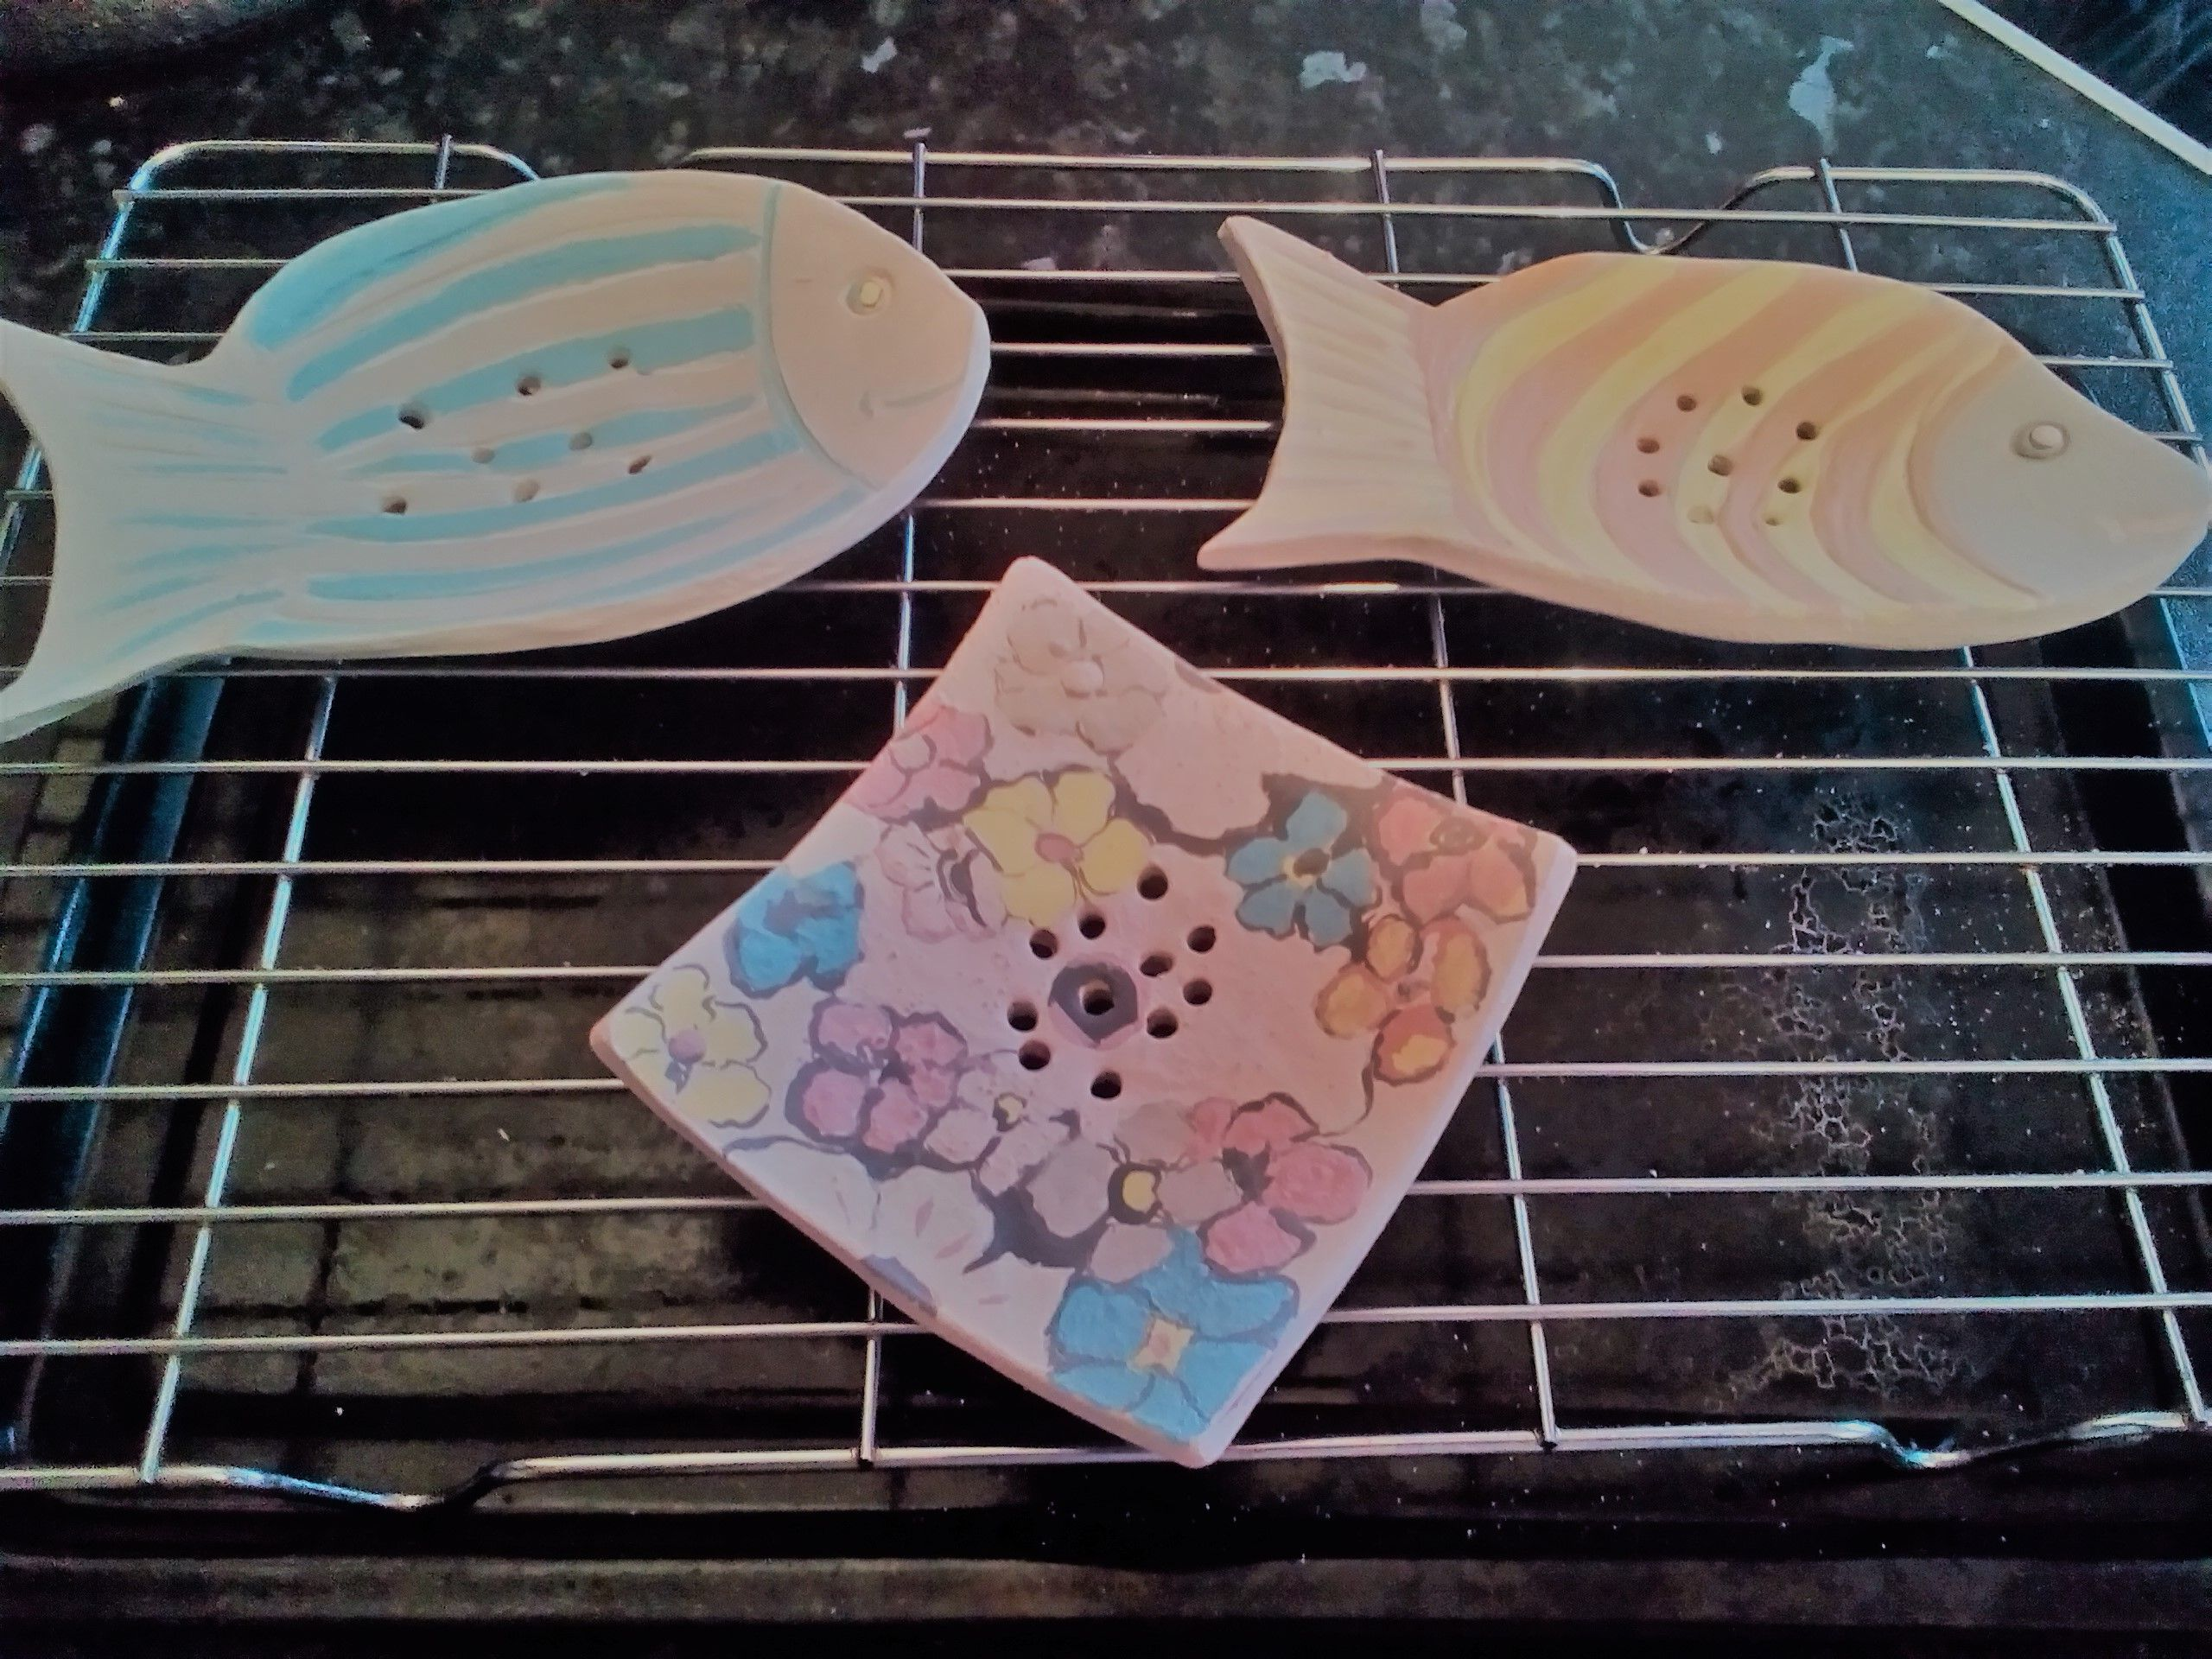 Work in progress Ceramic soap dishes now underglazed